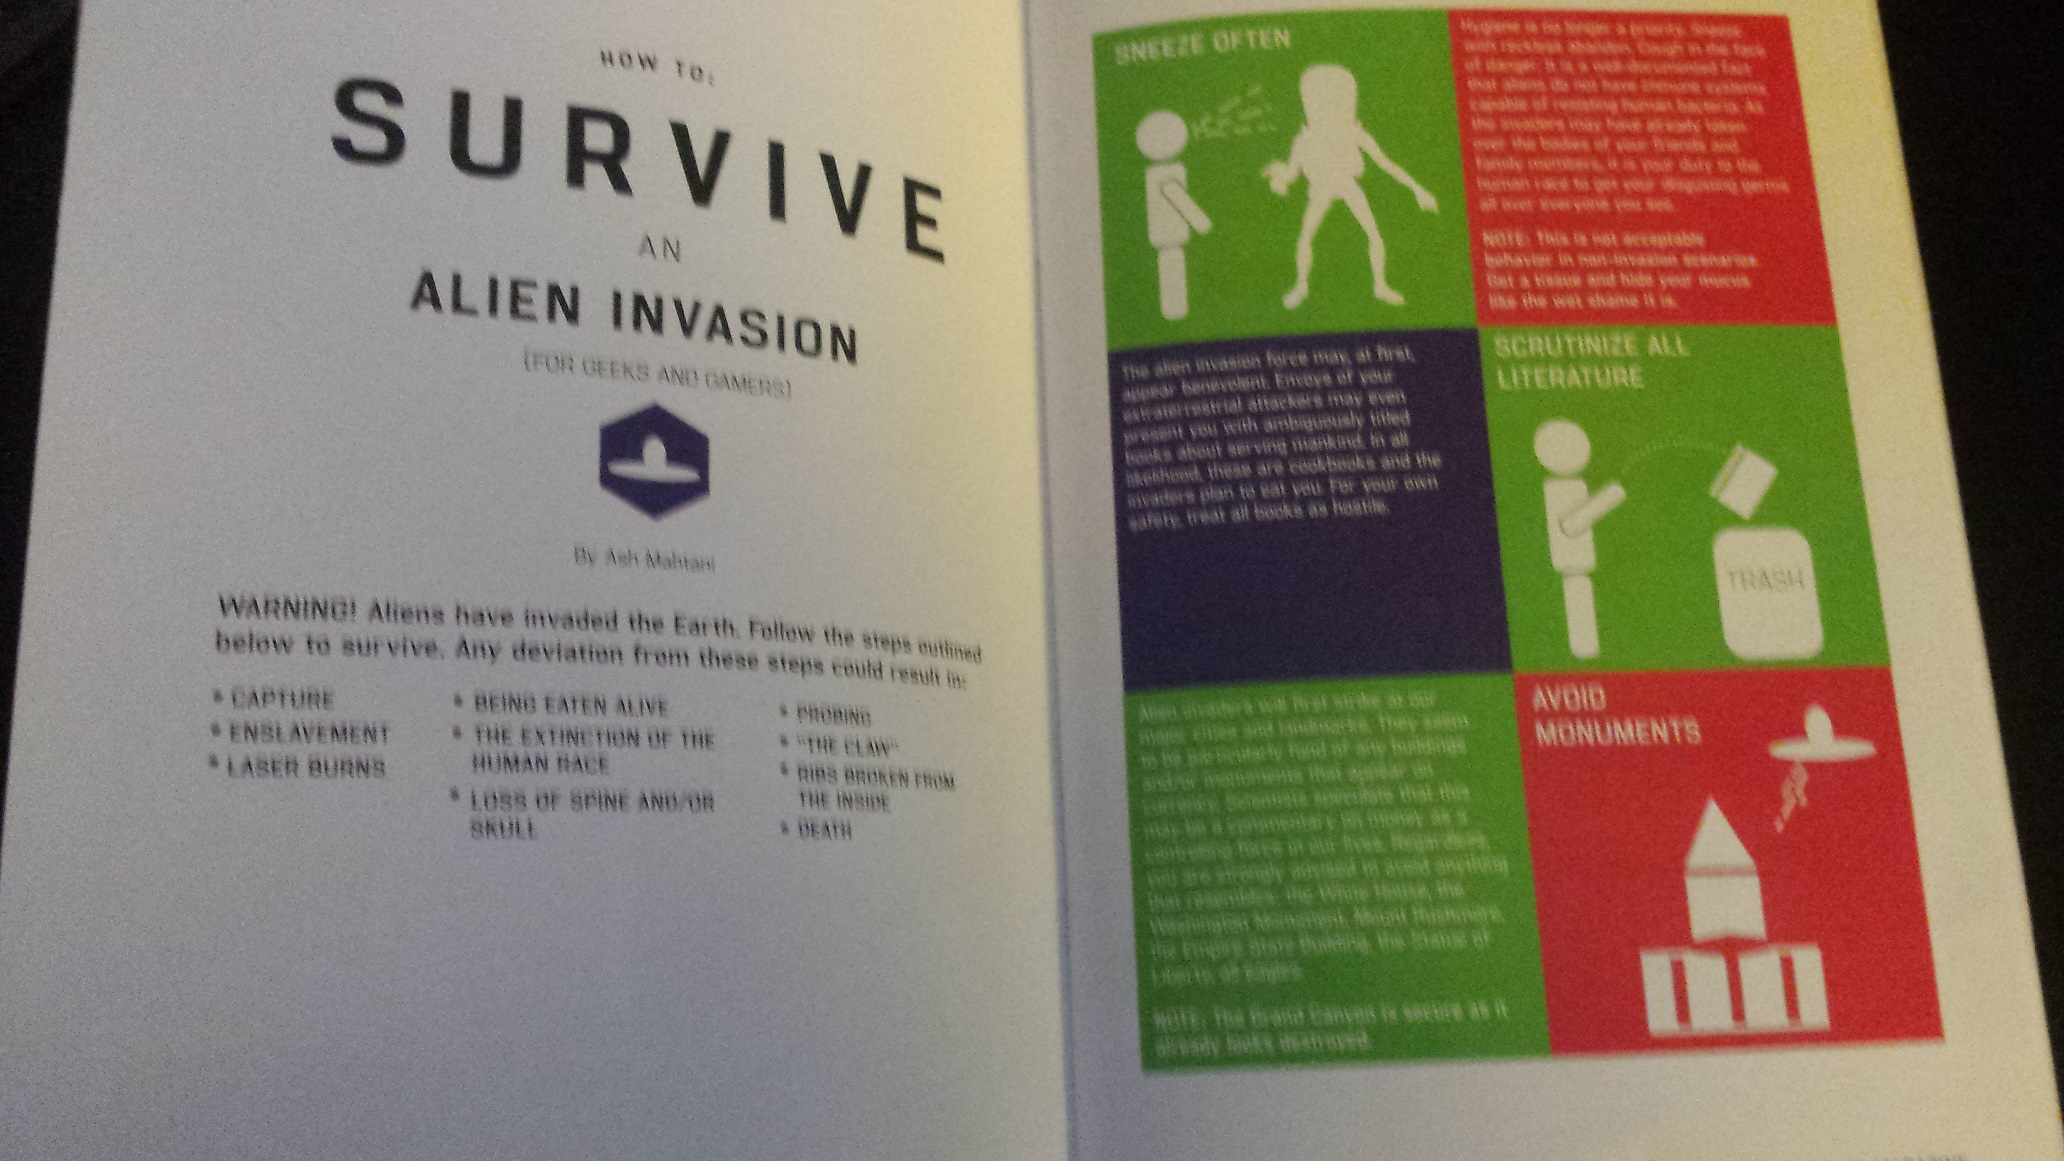 Lc magazine, loot crate january 2016, loot crate unboxing, the fifth element, x files, invasion